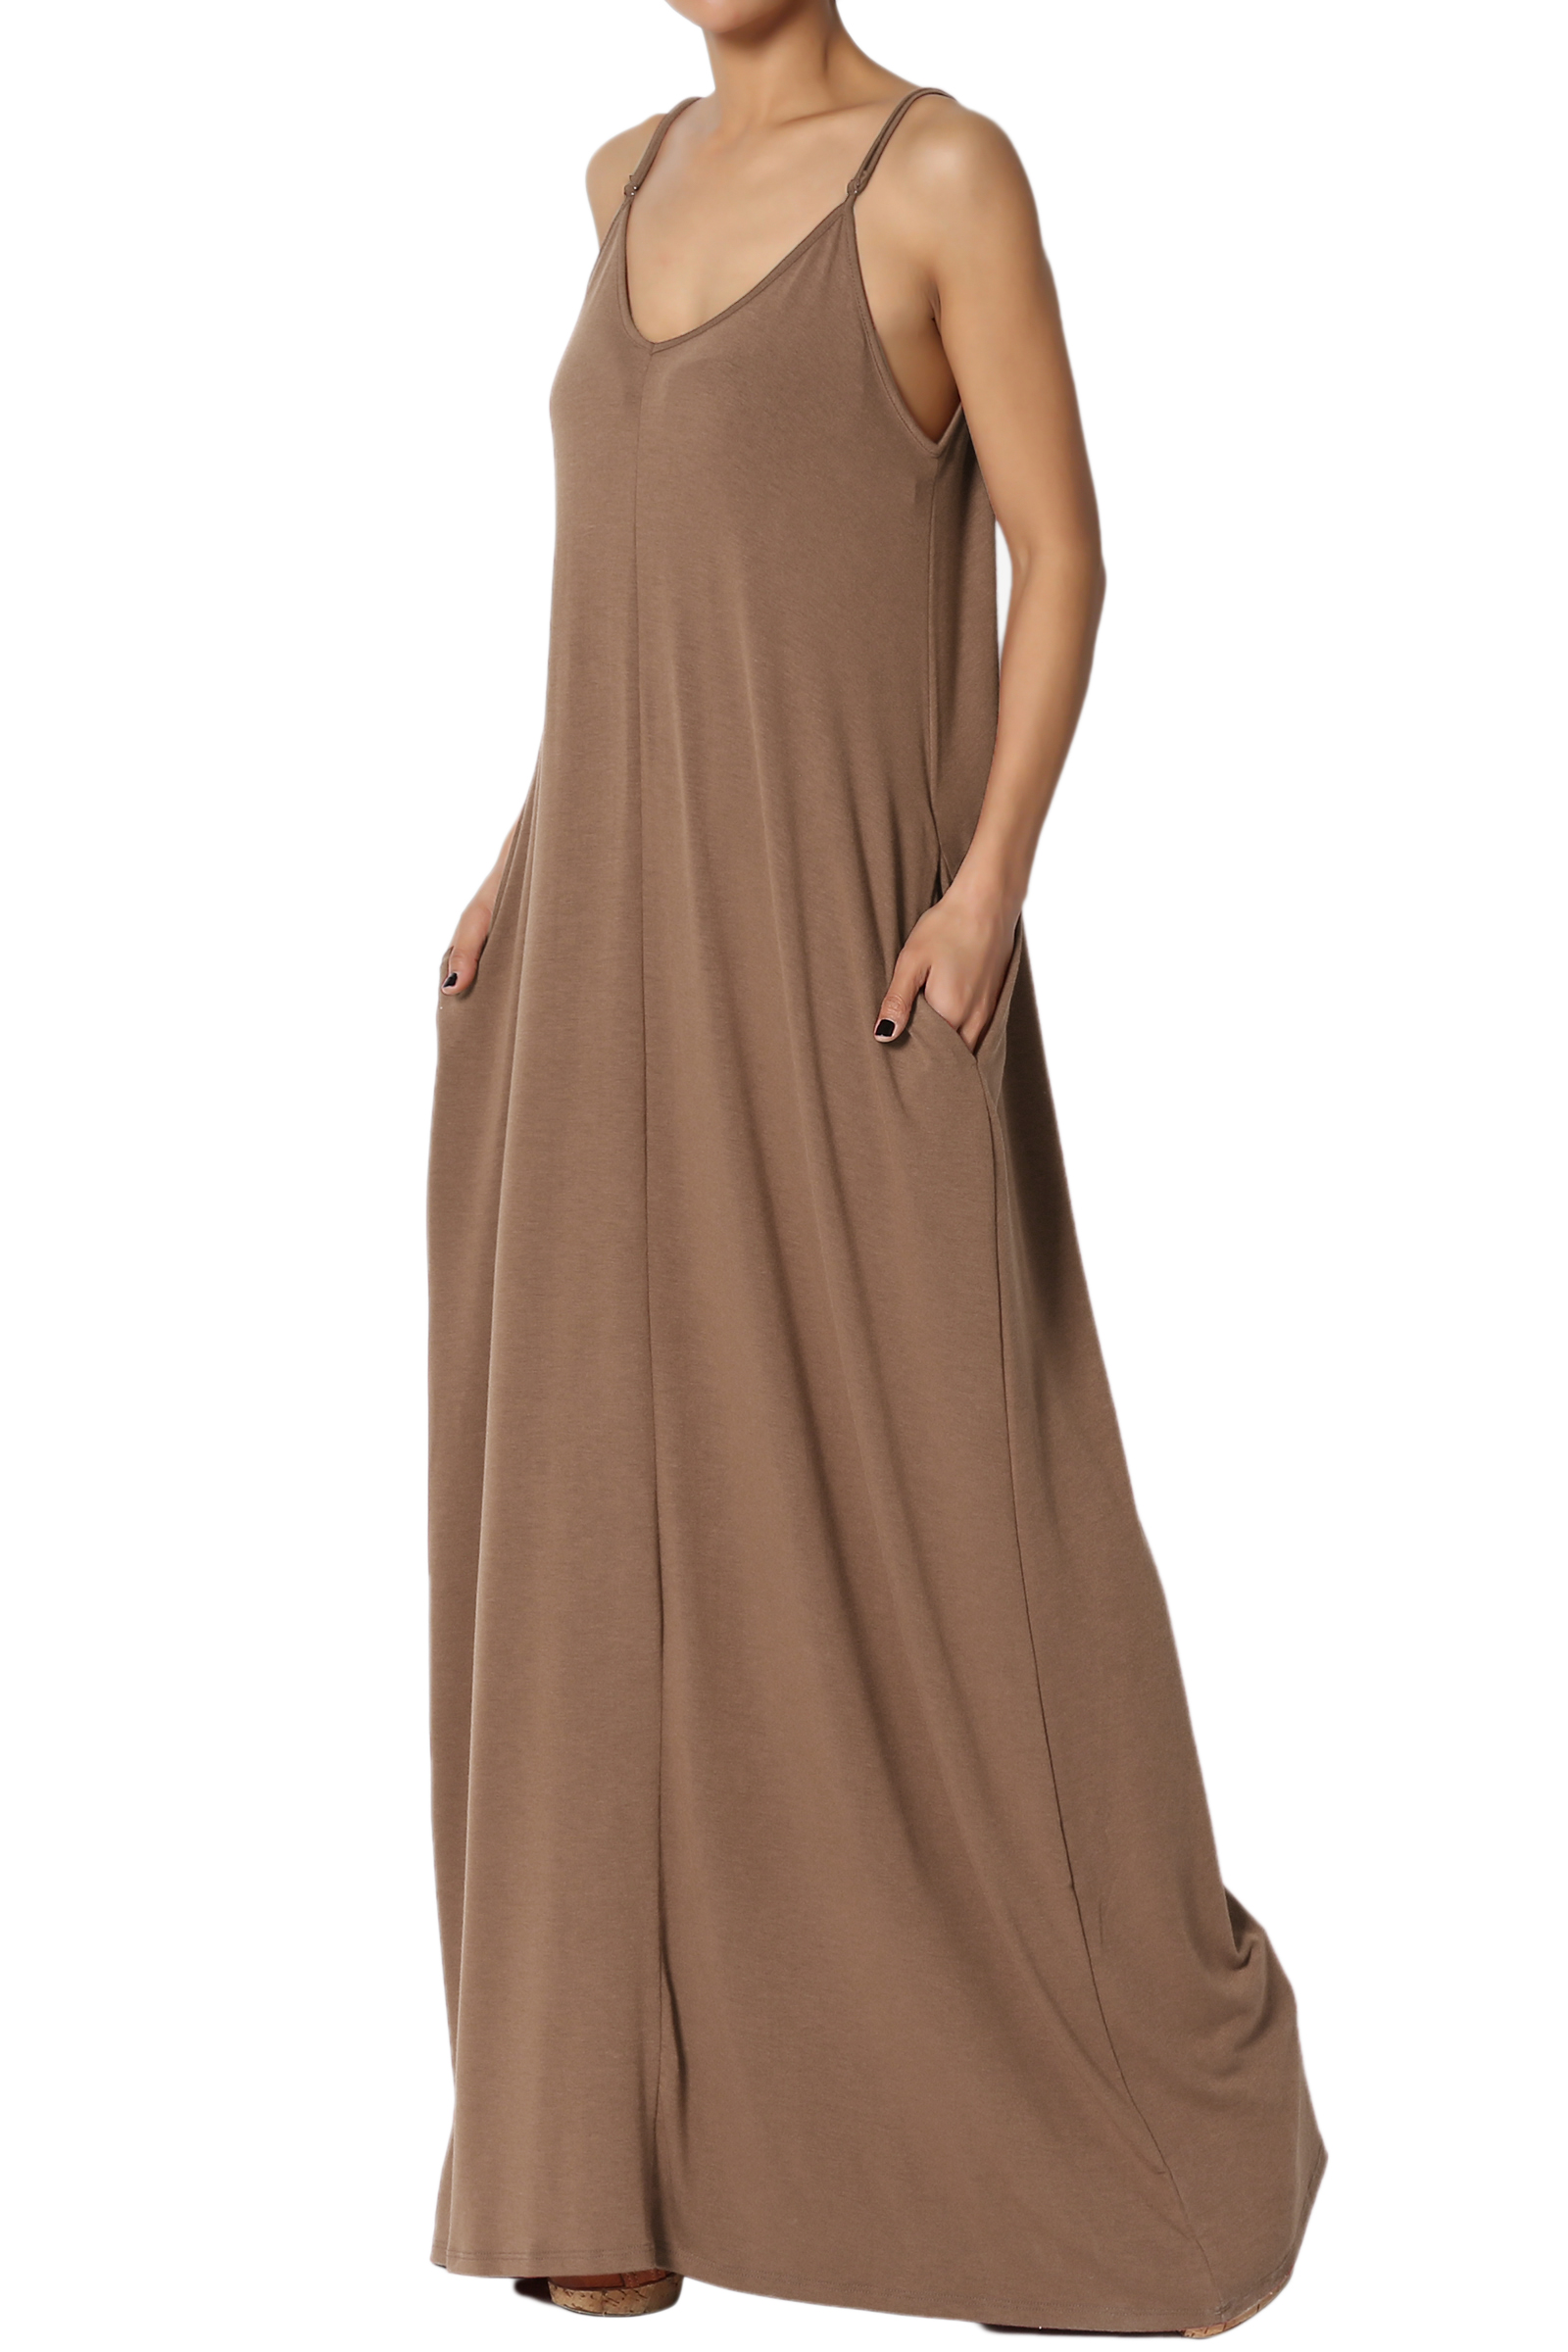 TheMogan Women's V-Neck Draped Jersey Casual Beach Cami Long Maxi Dress W Pocket